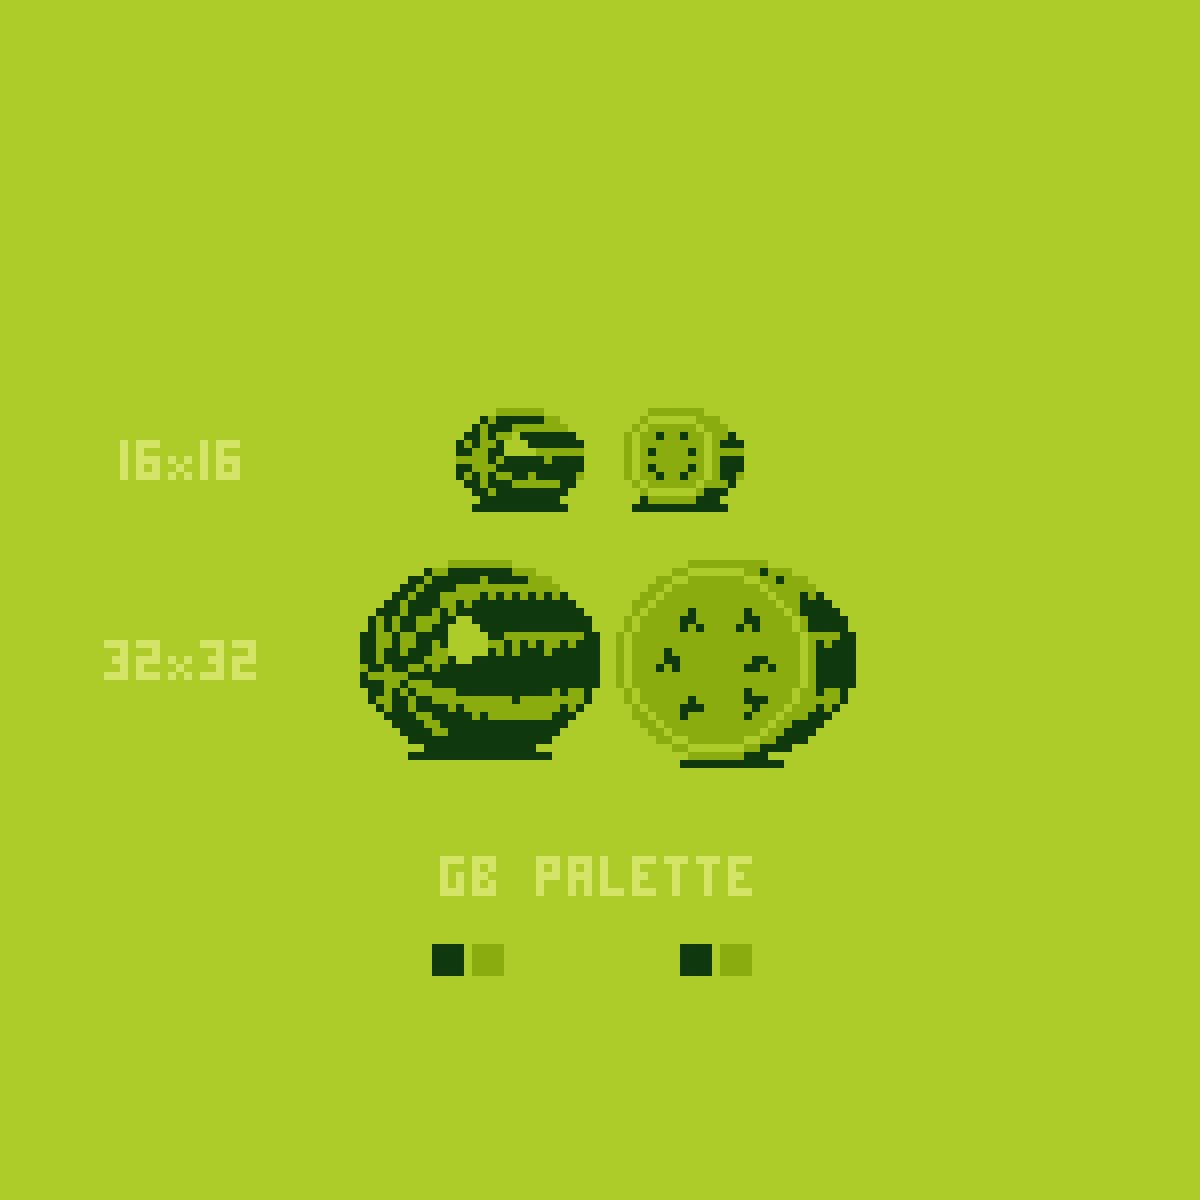 Gameboy color palettes - Jeremy Brown On Twitter Watermelon Pixelart Color Palette And Resolution Tests Nes Gb Gameboy Gameboycolor Pico8 Https T Co Izoymclopc